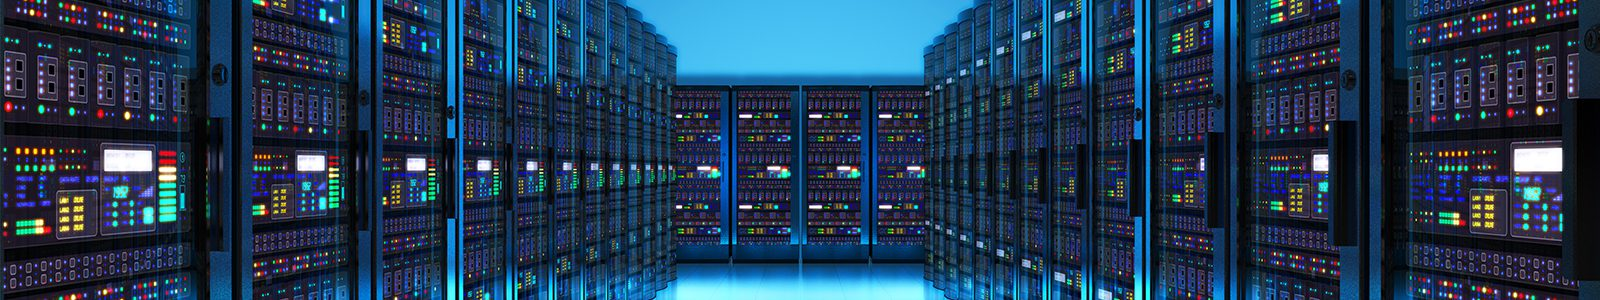 Datacenter Application Banner